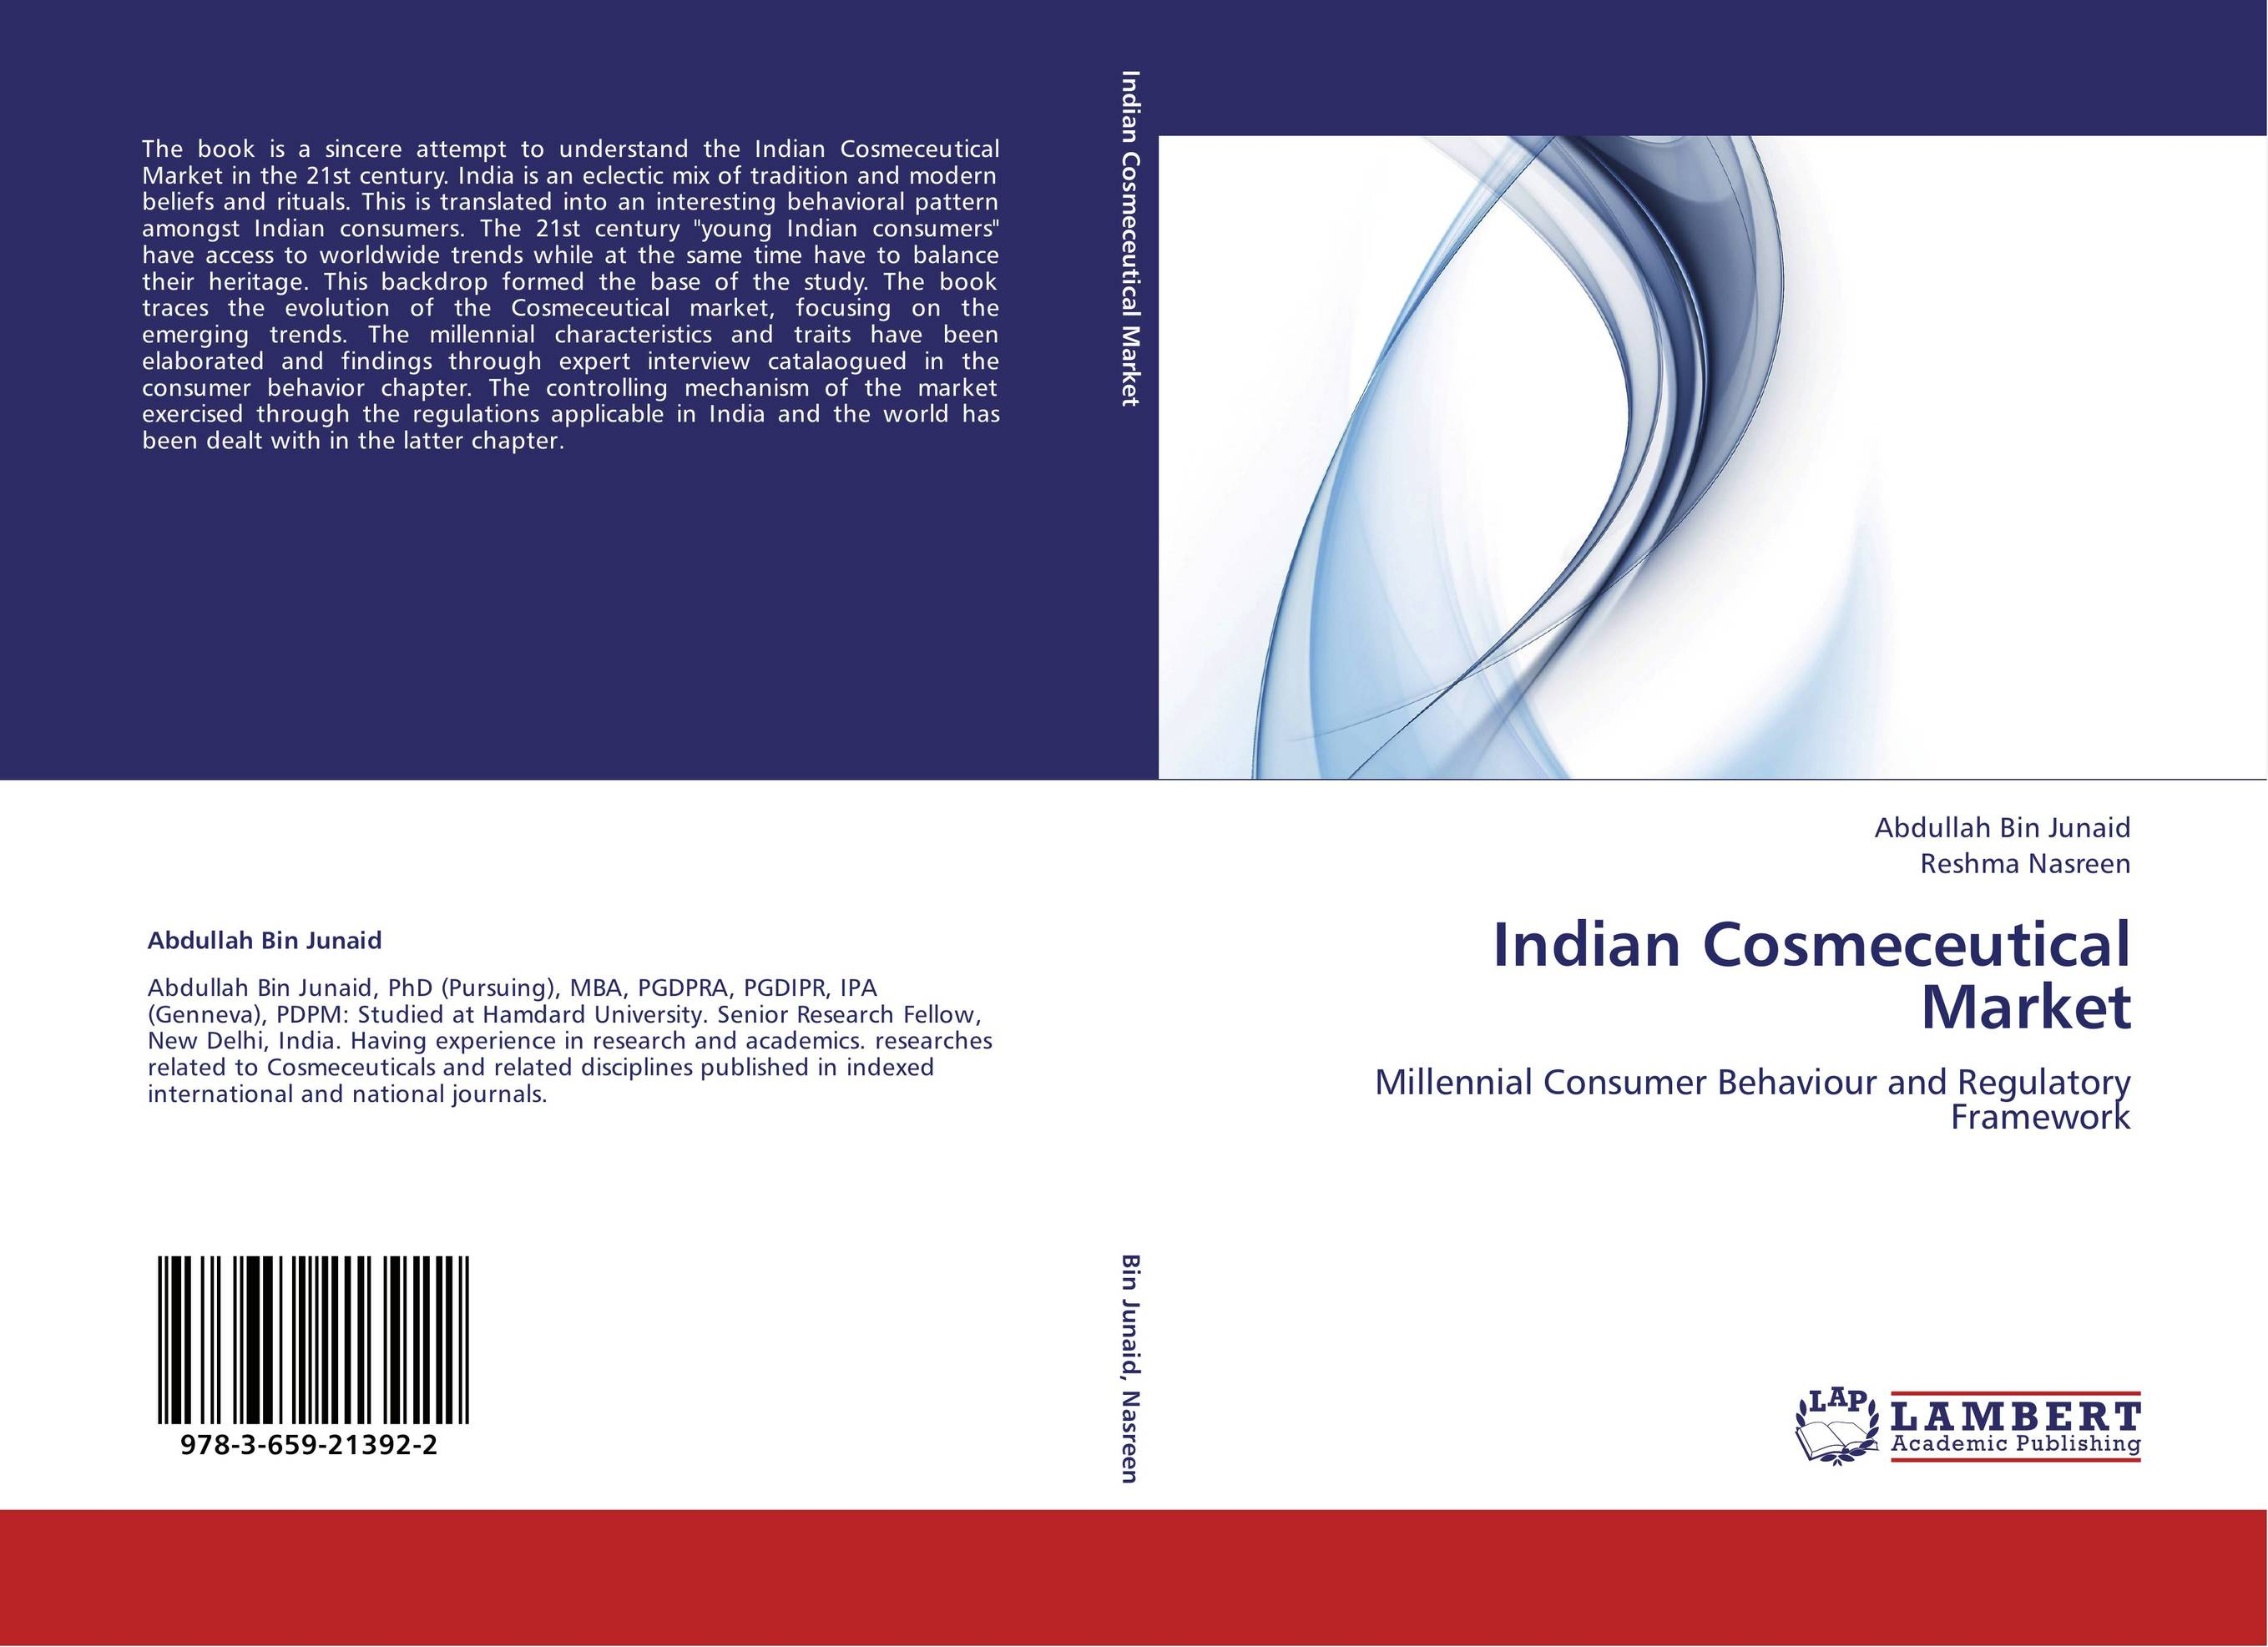 indian consumer behavior A consumer segmentation section in the report breaks down the india's consumers by specific age groups, ranging from babies and infants to pensioners highlighting the factors that influence purchasing decisions and the products in greatest demand for each segment.